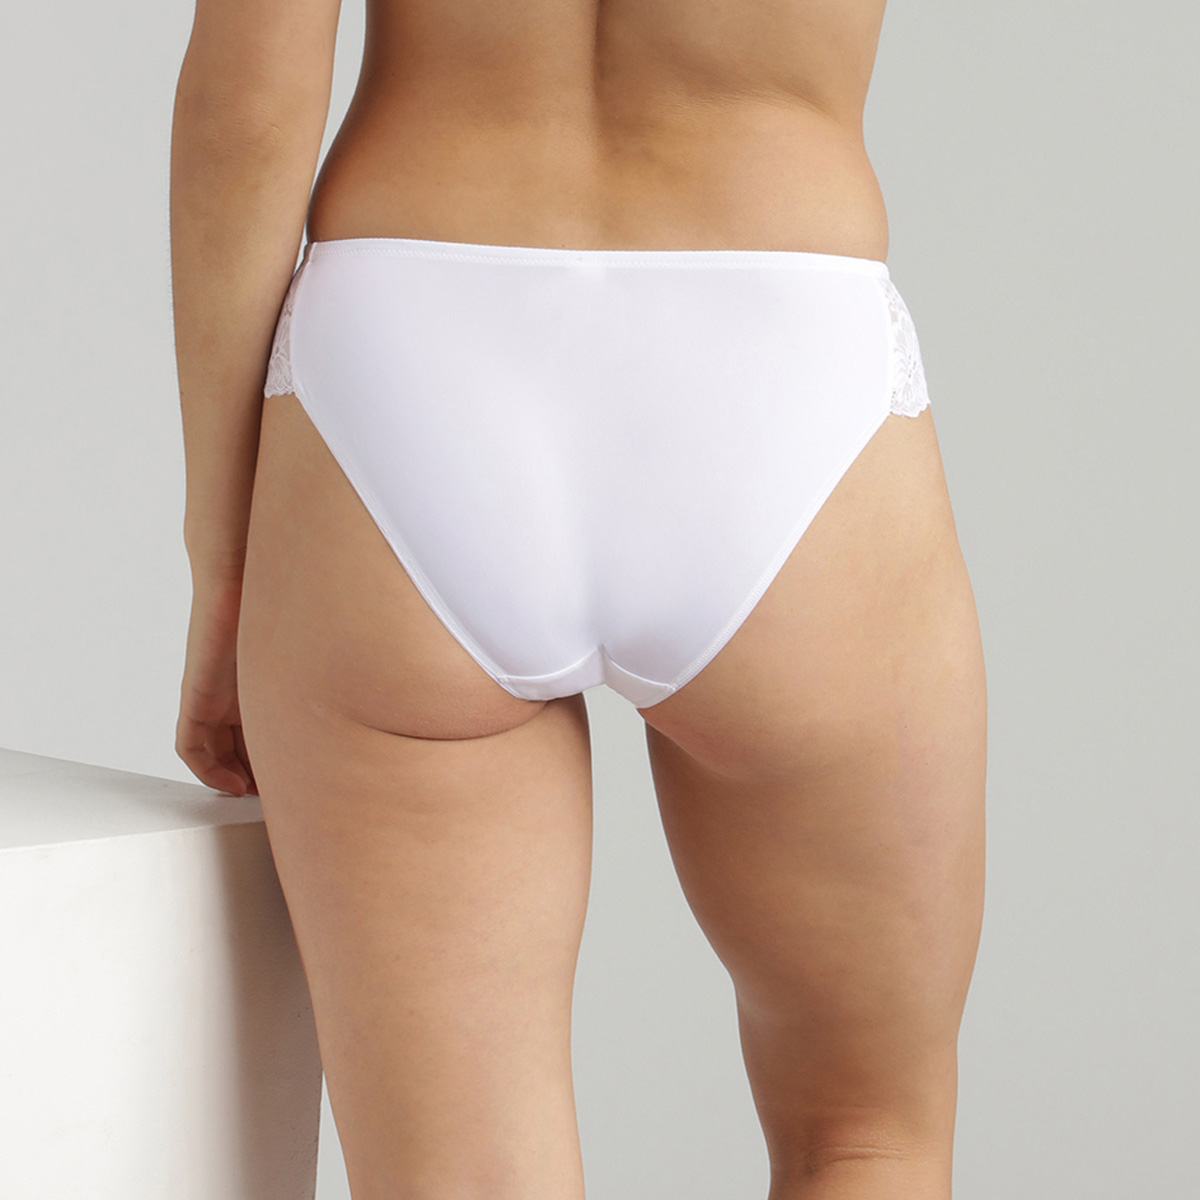 Bikini Knickers in White Lace Essential Elegance, , PLAYTEX